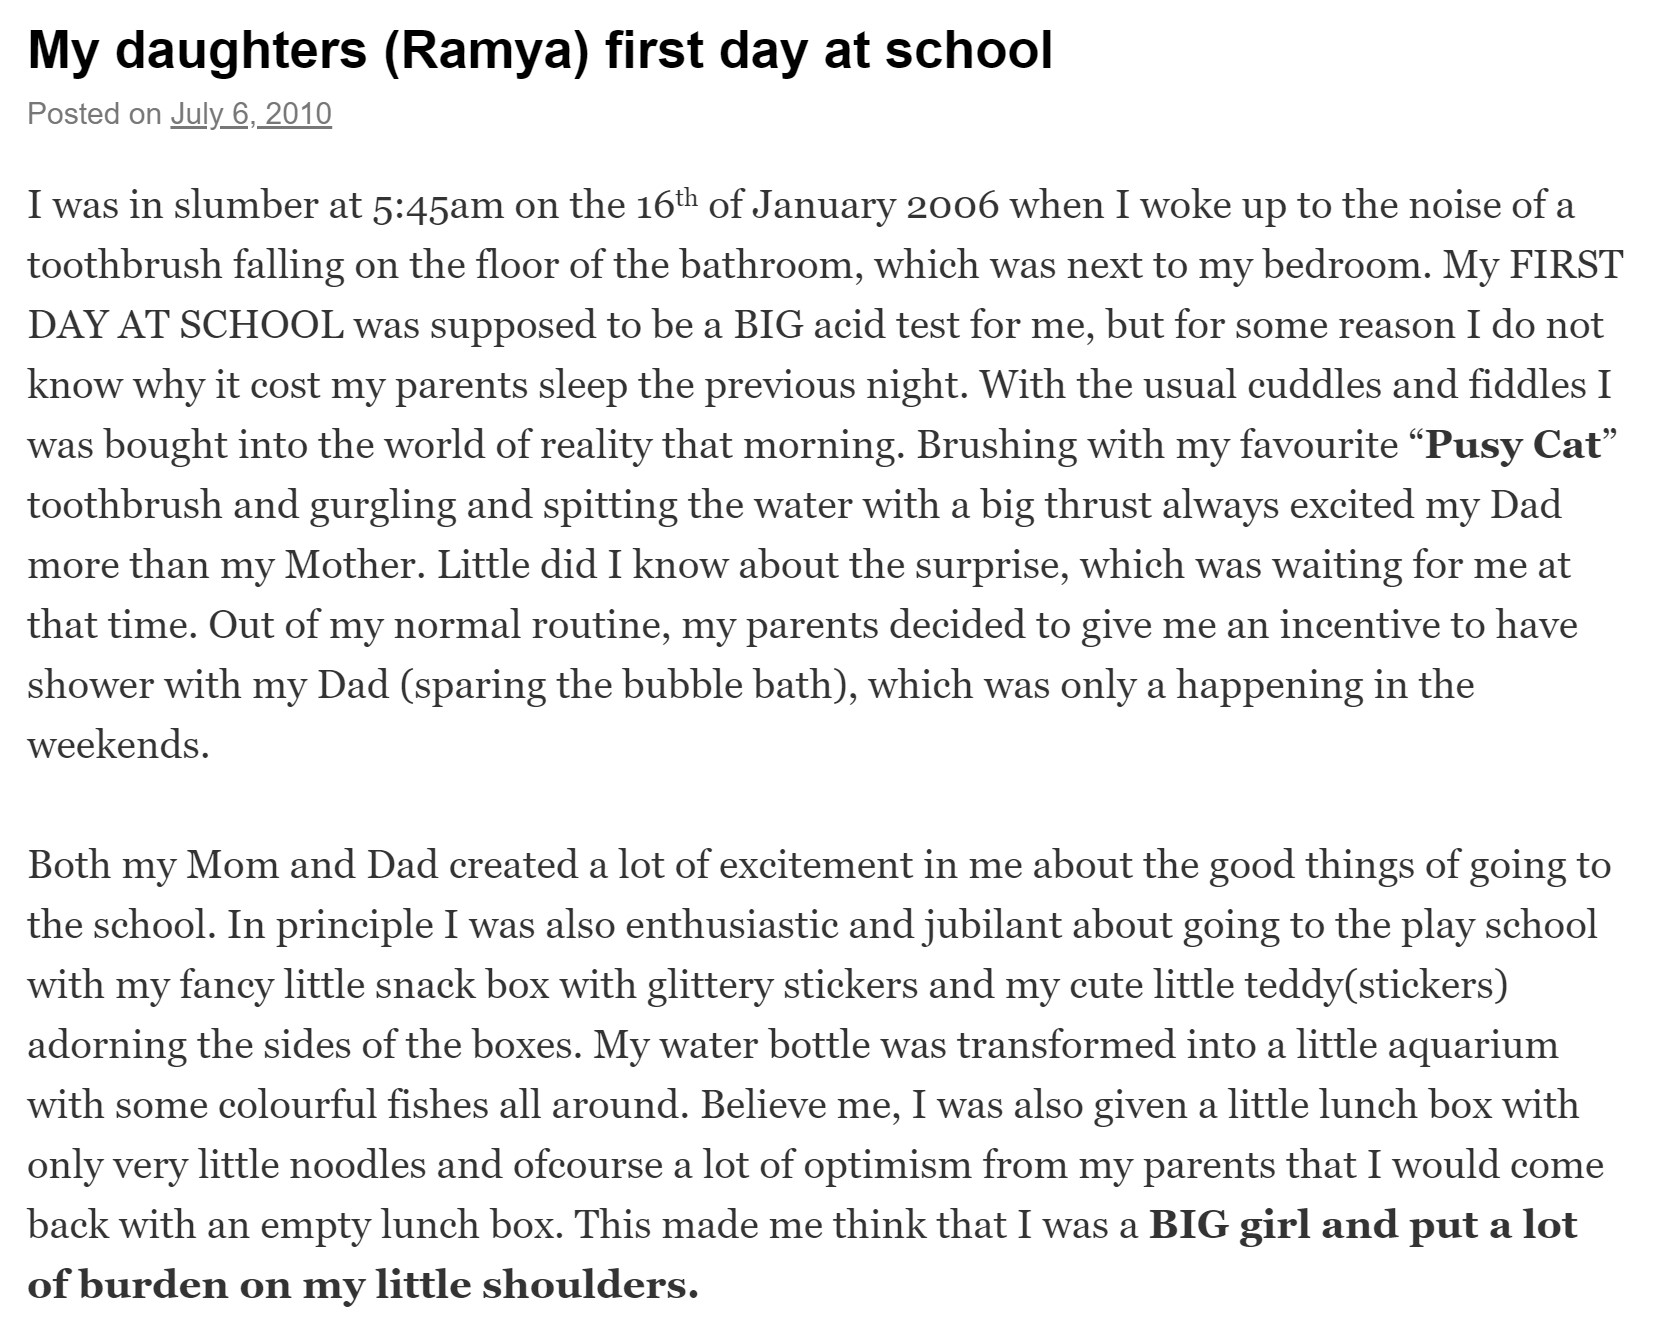 Ramyas first day at school